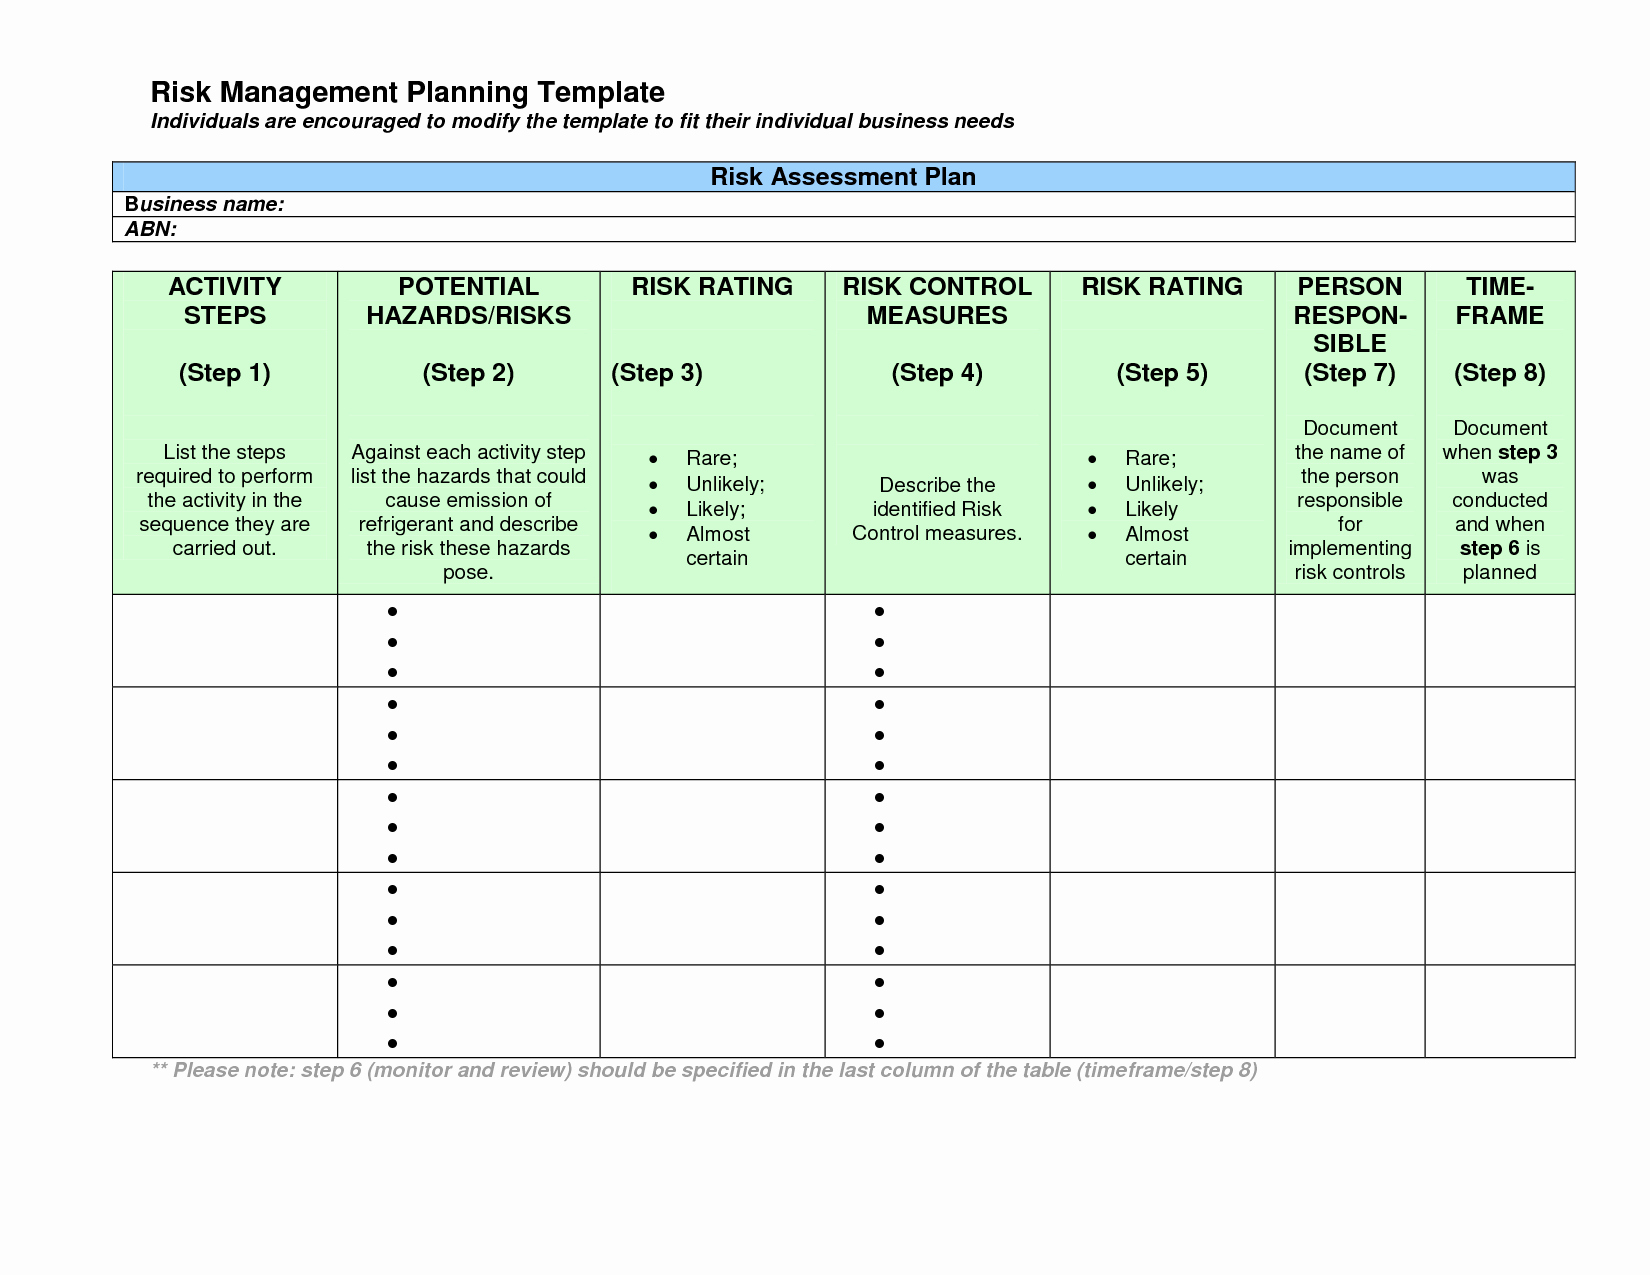 Risk Management Plan Template Luxury Risk Management Plan Template